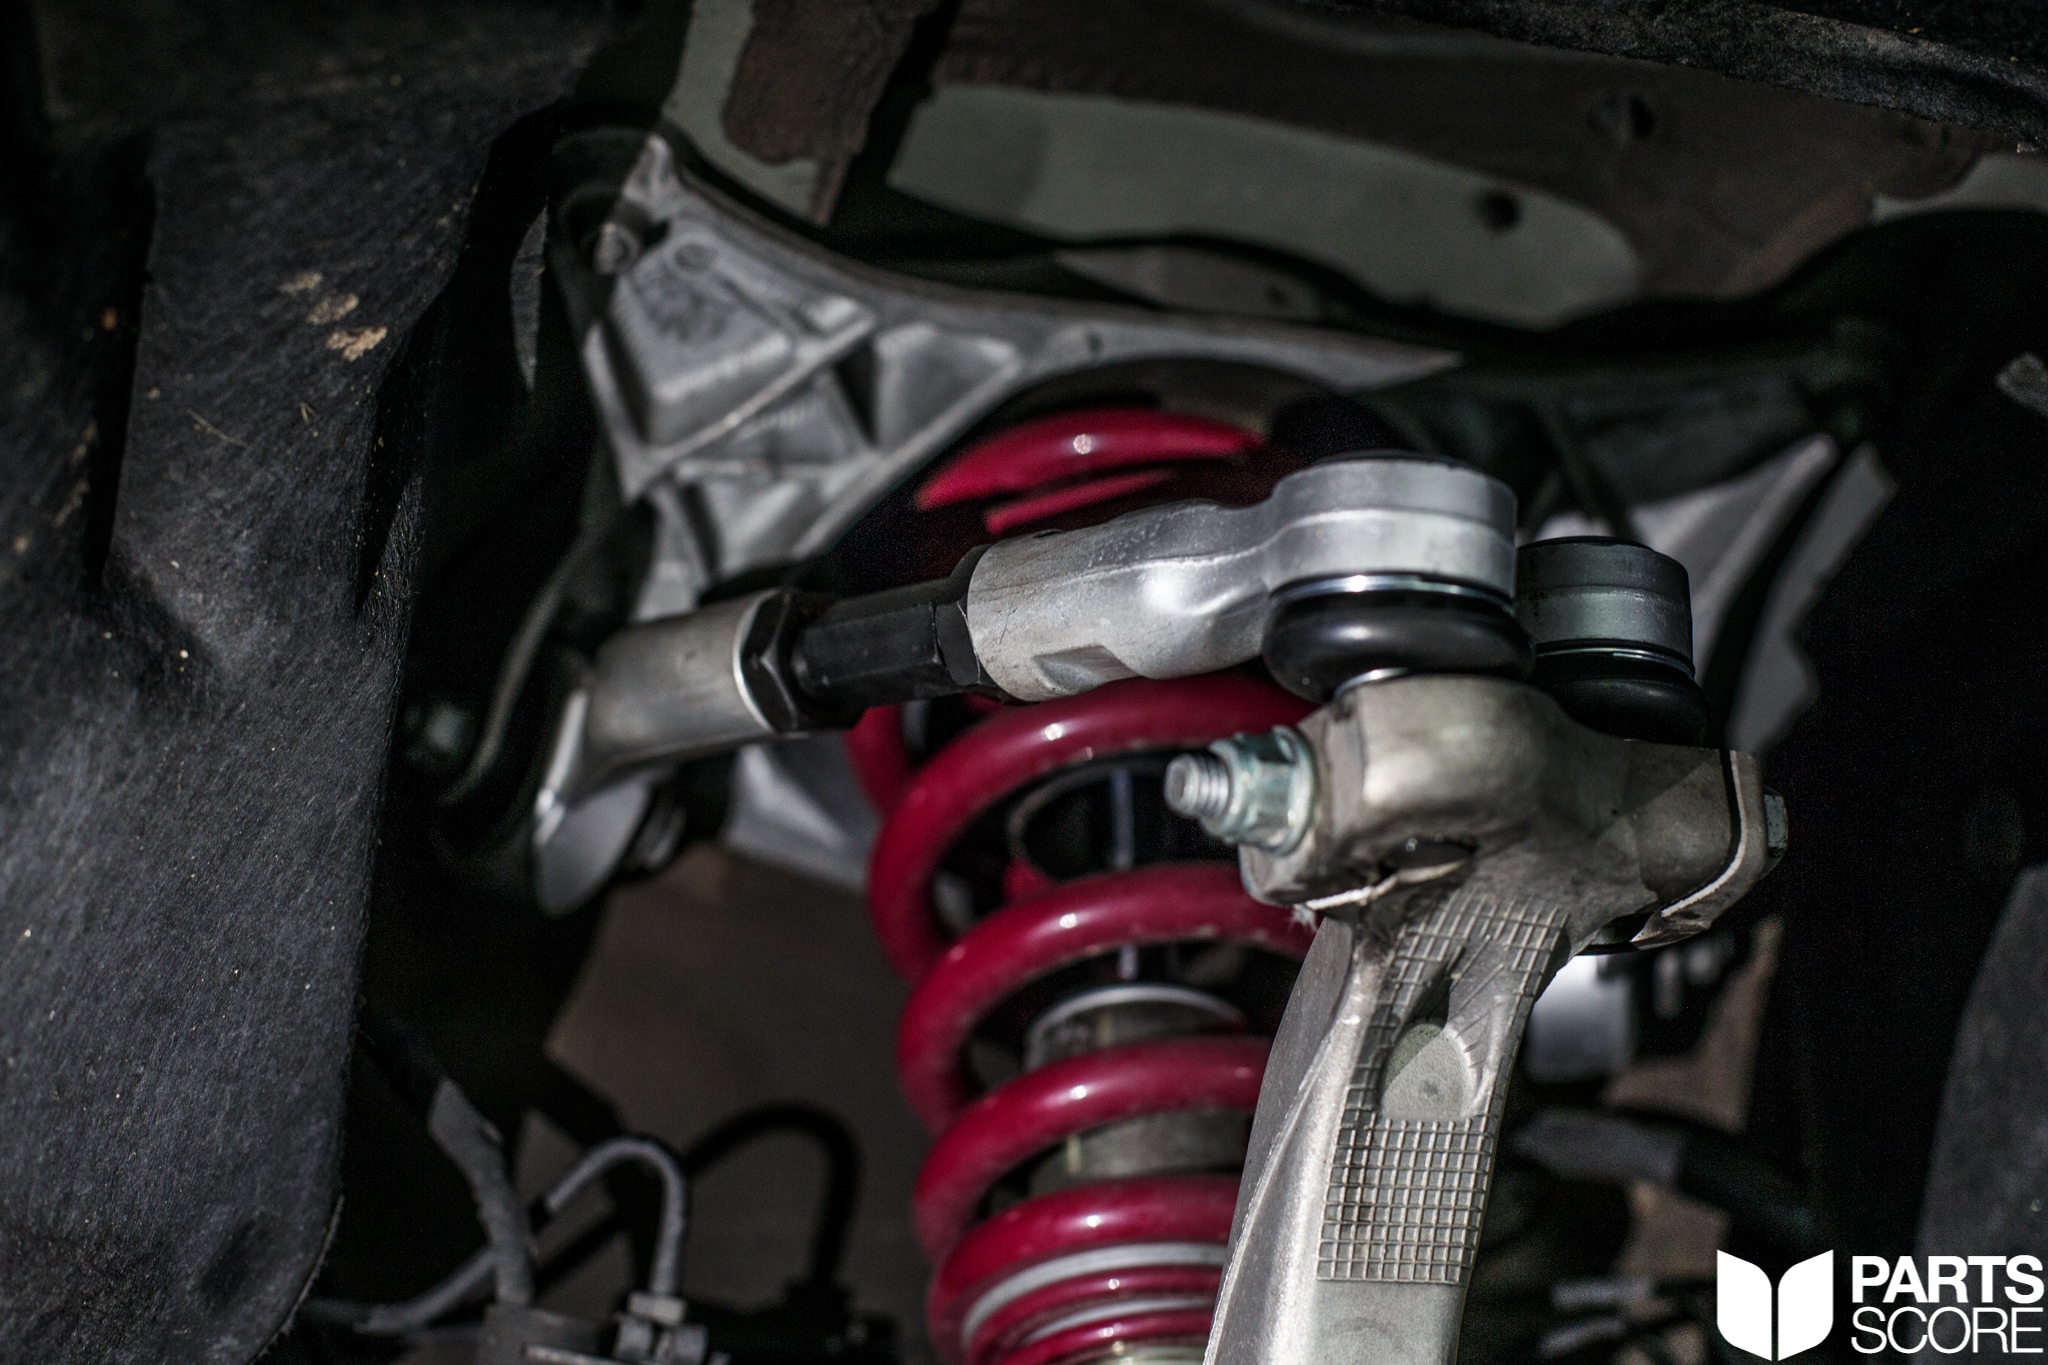 parts score, partsscore, Adjustable Upper Control Arms, audi, s4, spc control arms, spc, spc audi, ecs tuning, audis4, audis, control arms, camber, caster, racecar, performance, audirs, b8, b8.5, b8 s4, b8.5 s4, stance, slammed, coilovers, springs, static, airride, air ride, giac, stage 2, giac stage 2, hawk, hawk hps, hawk pads, brake pads, hawk brake pads, hawk performance, brake fluid